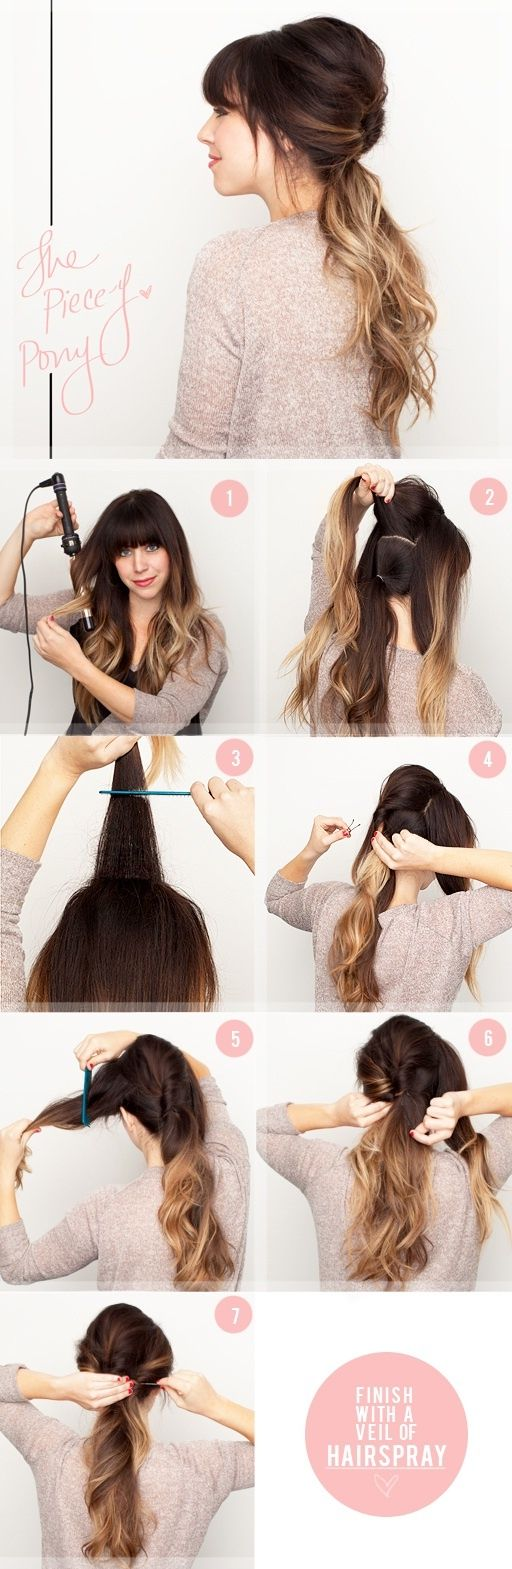 I am going to try this tomorrow, aka I am going to be one step closer to being a real girl